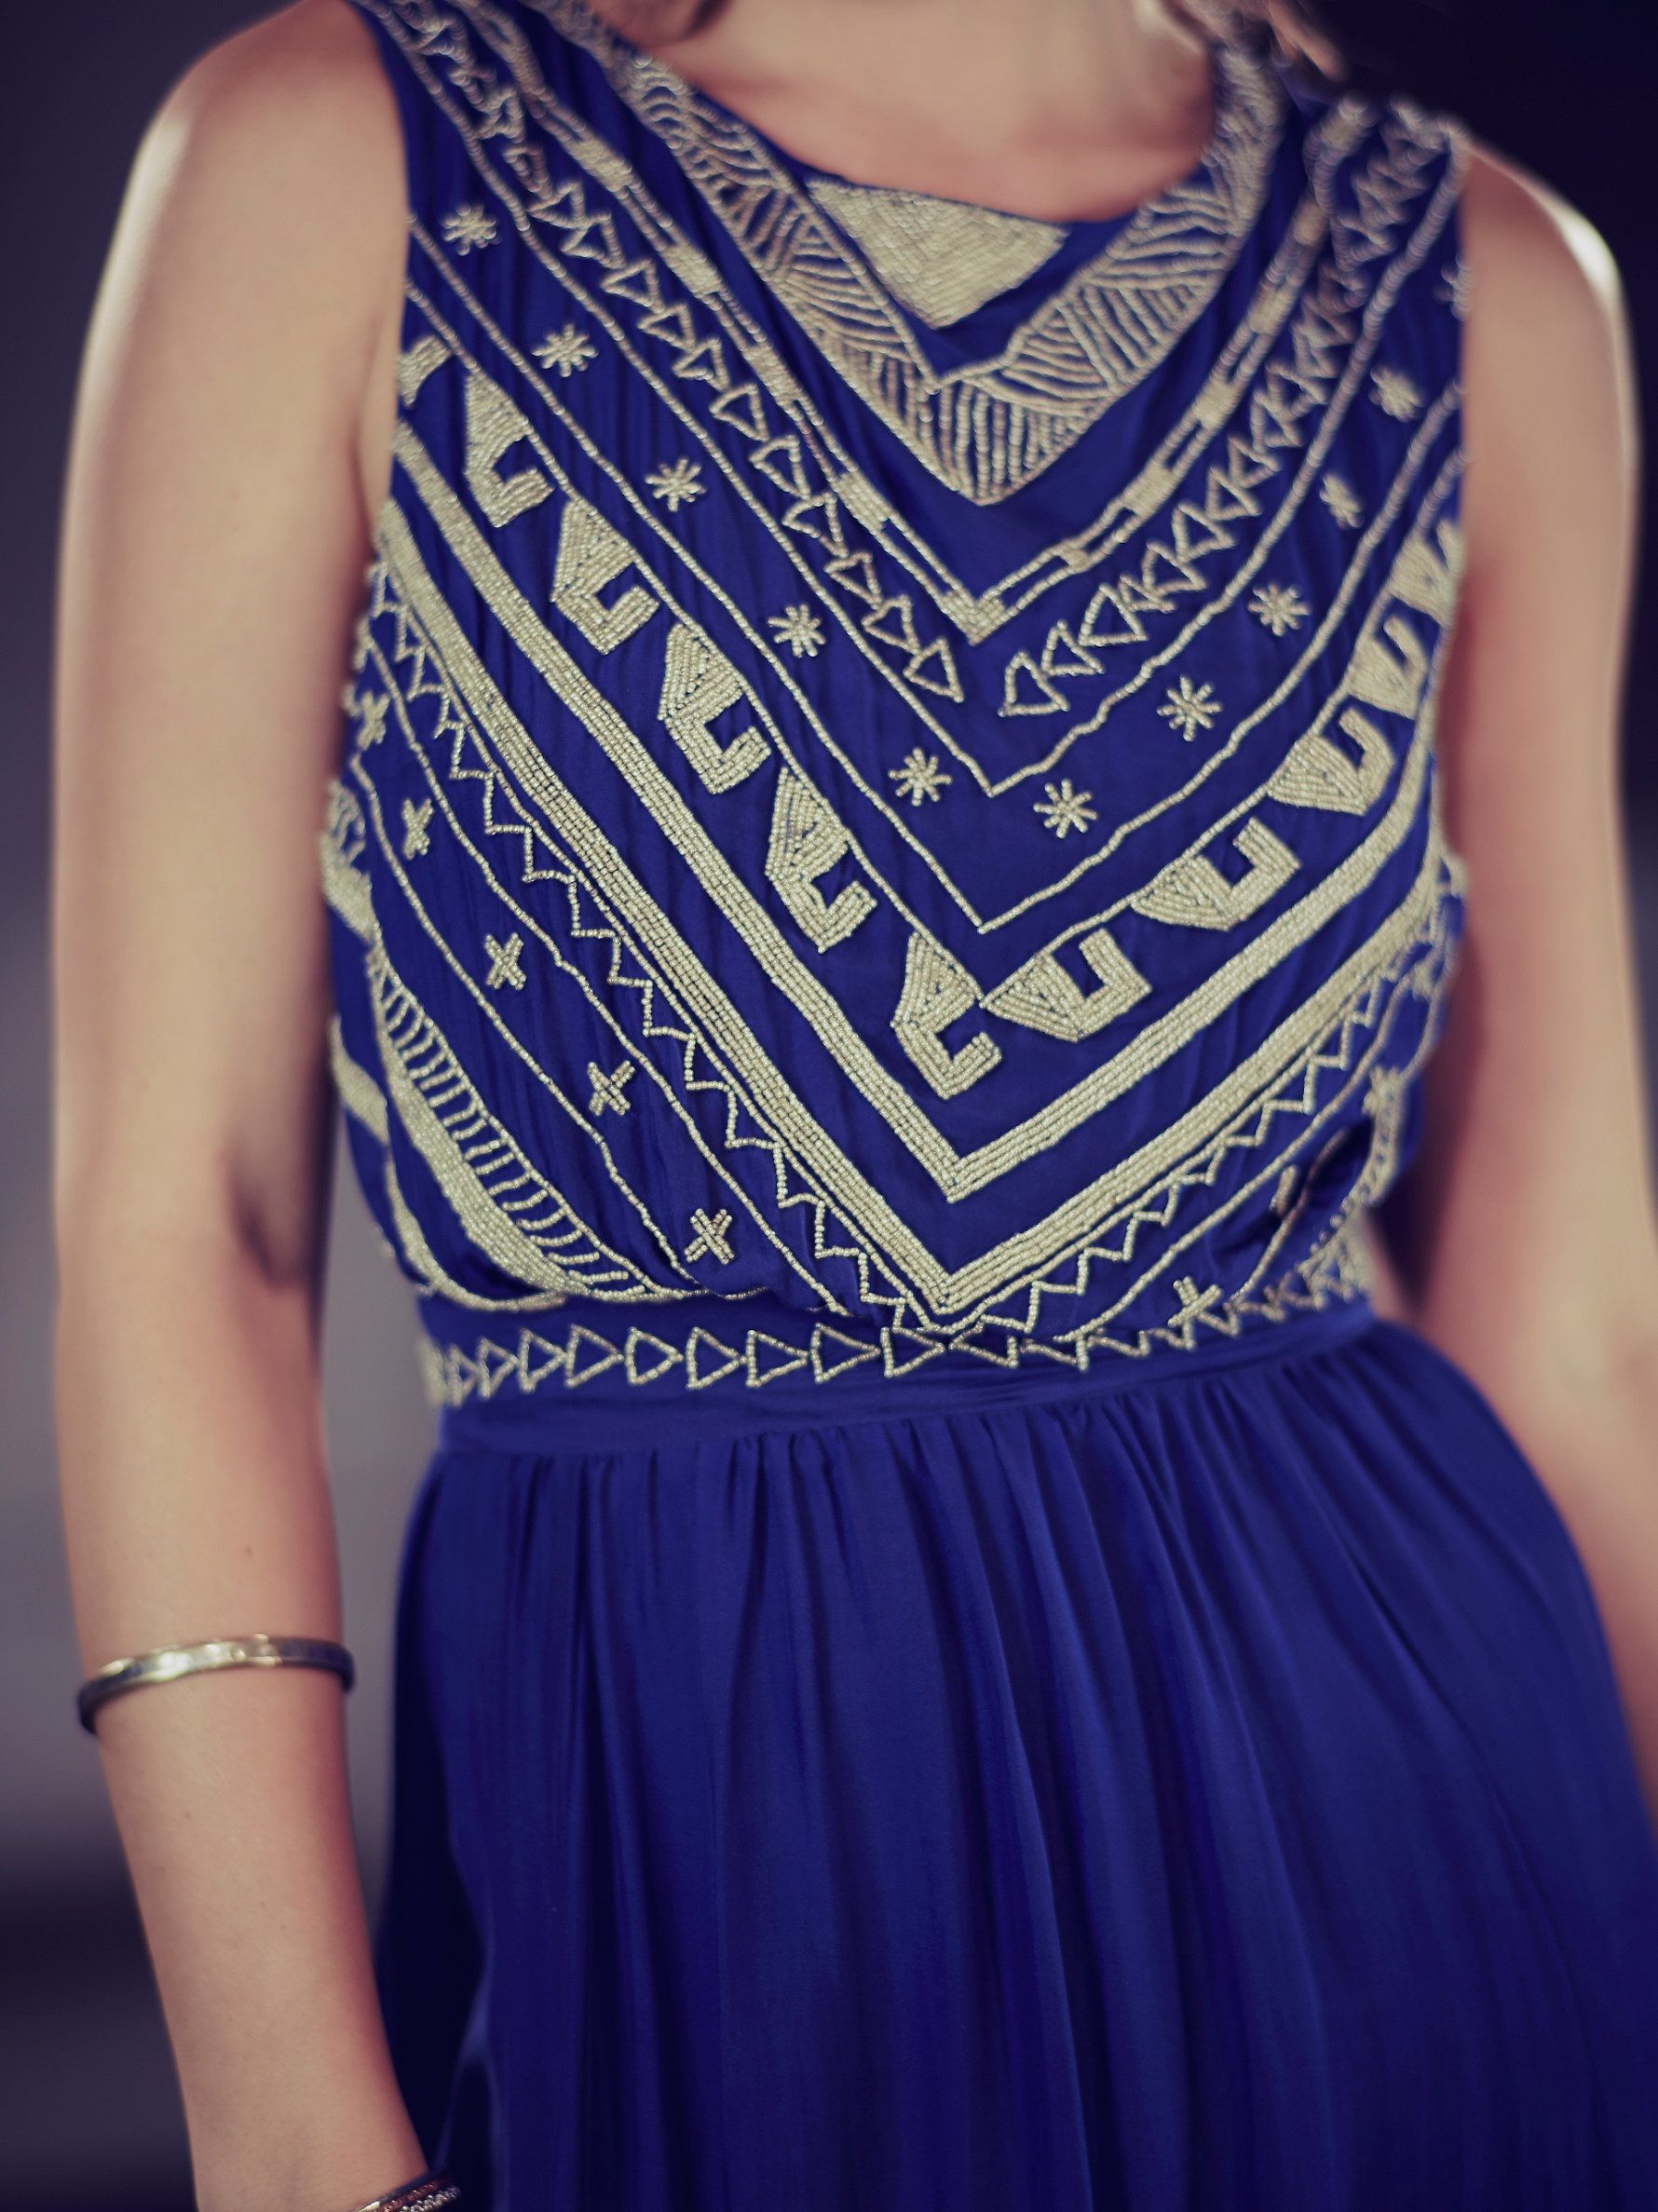 Free People Beaded Silk Chiffon Gown, $1254.00   Clothes   Pinterest